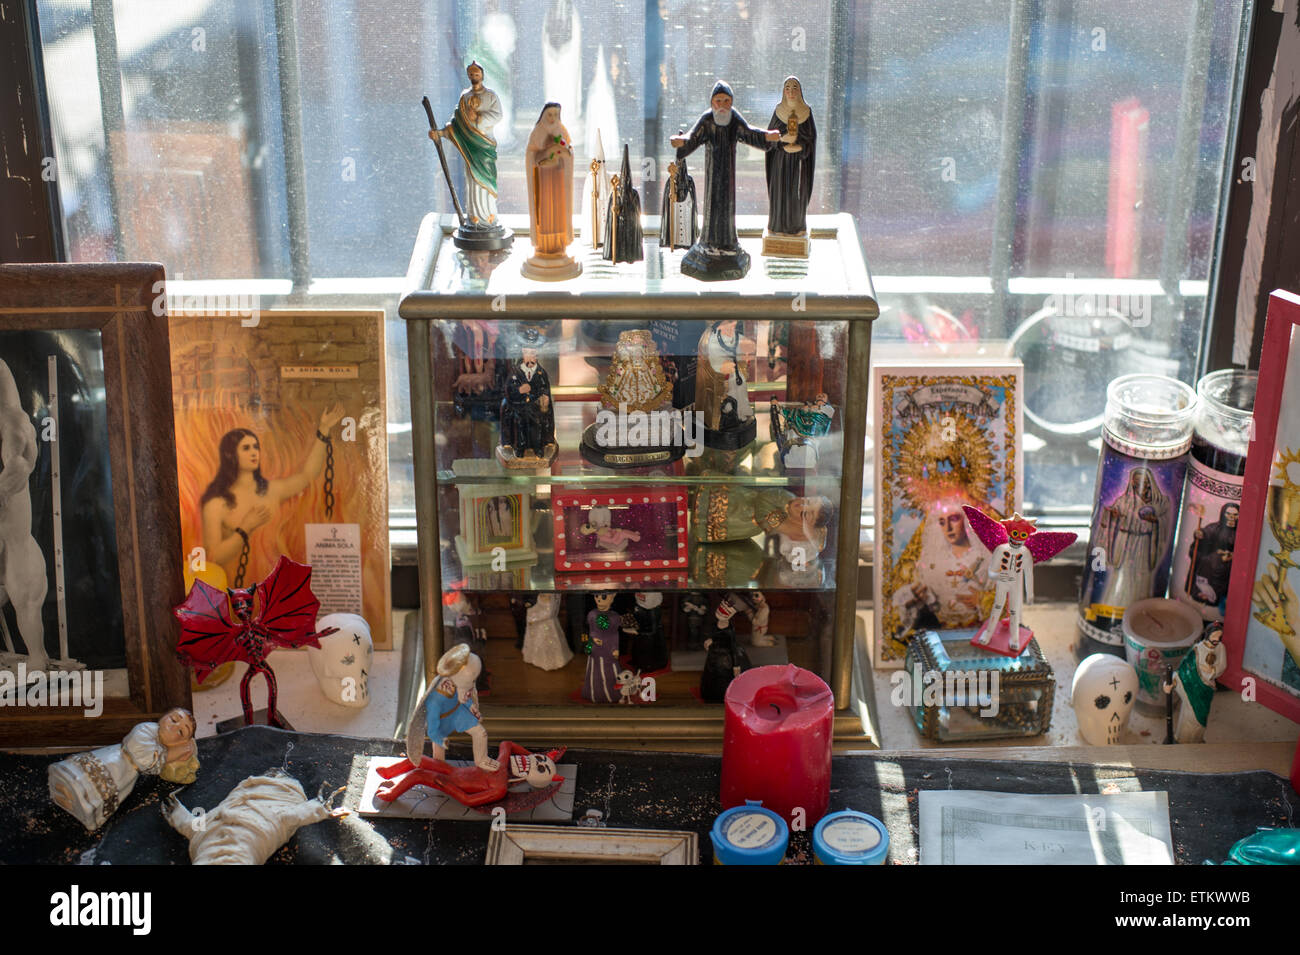 Window Display Of Death Centric And Religious Figures At The Morbid